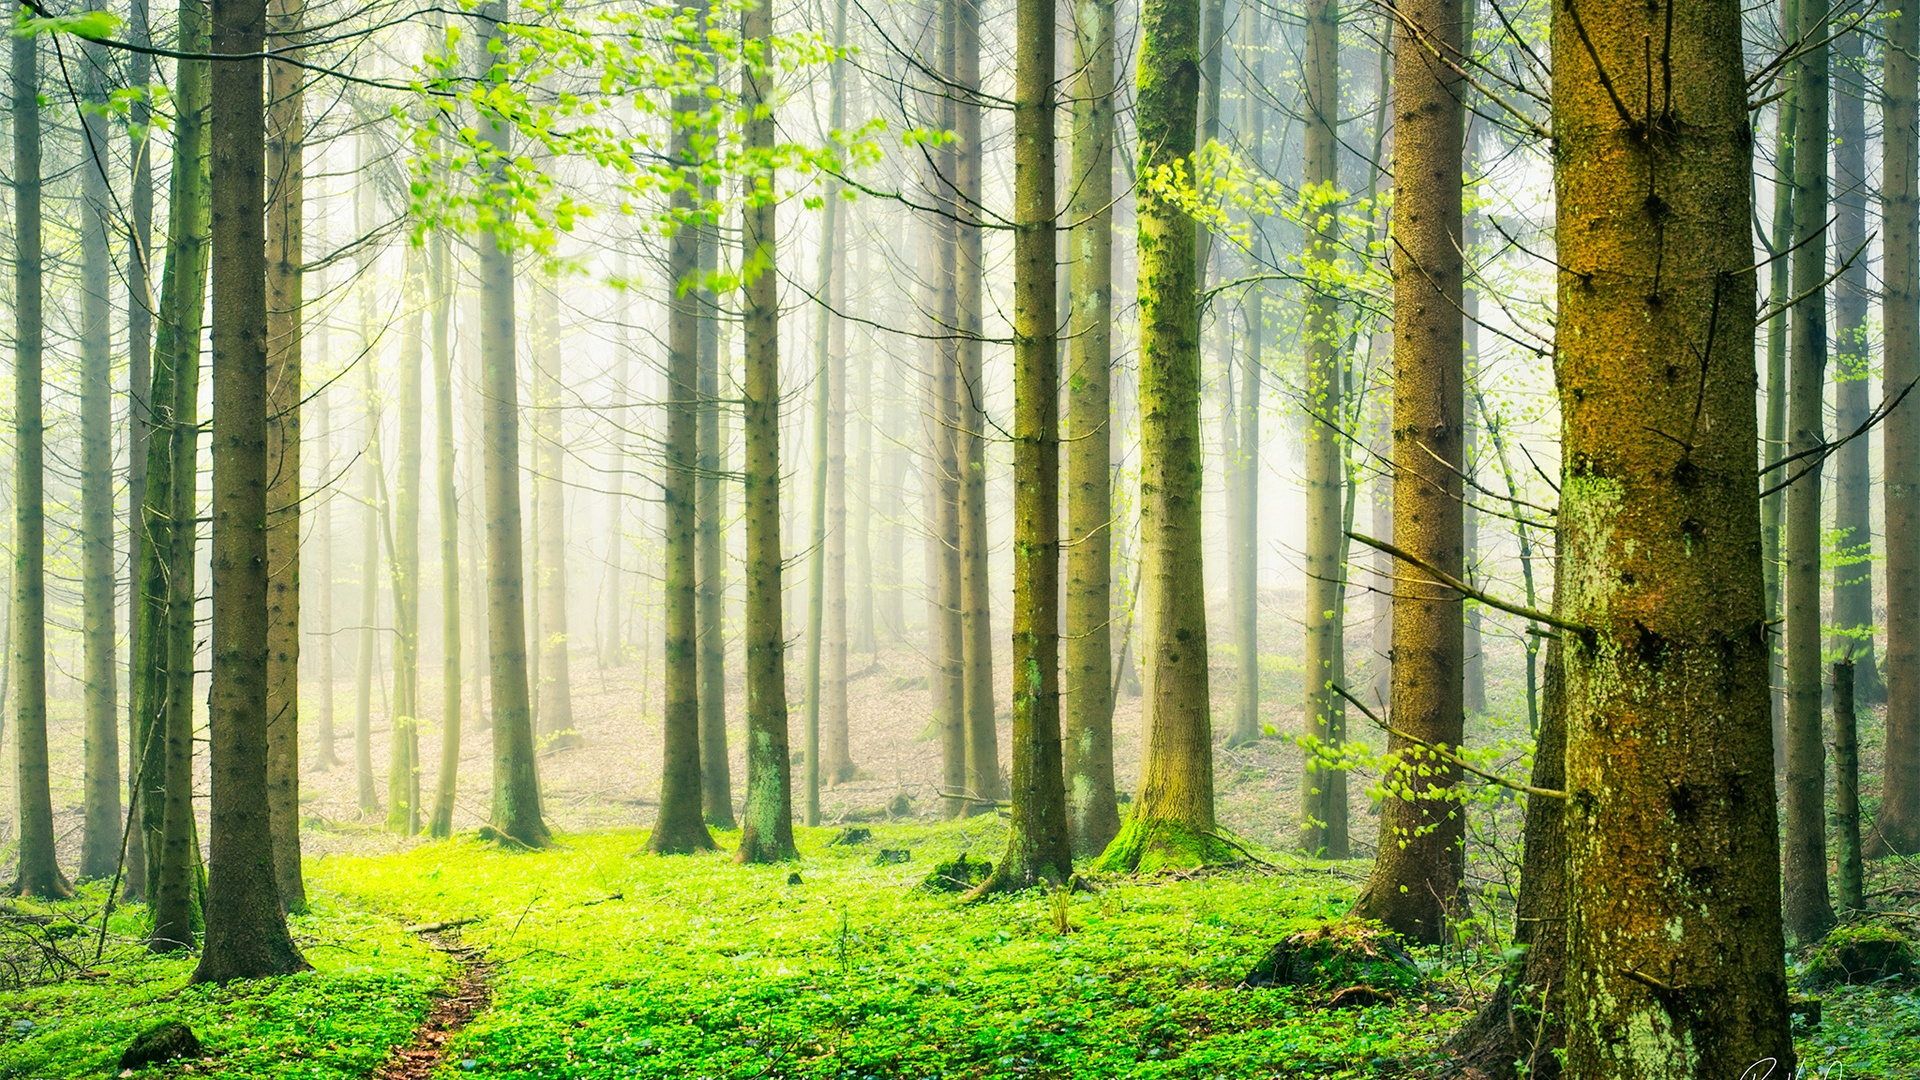 spring natural scenery hd - photo #15